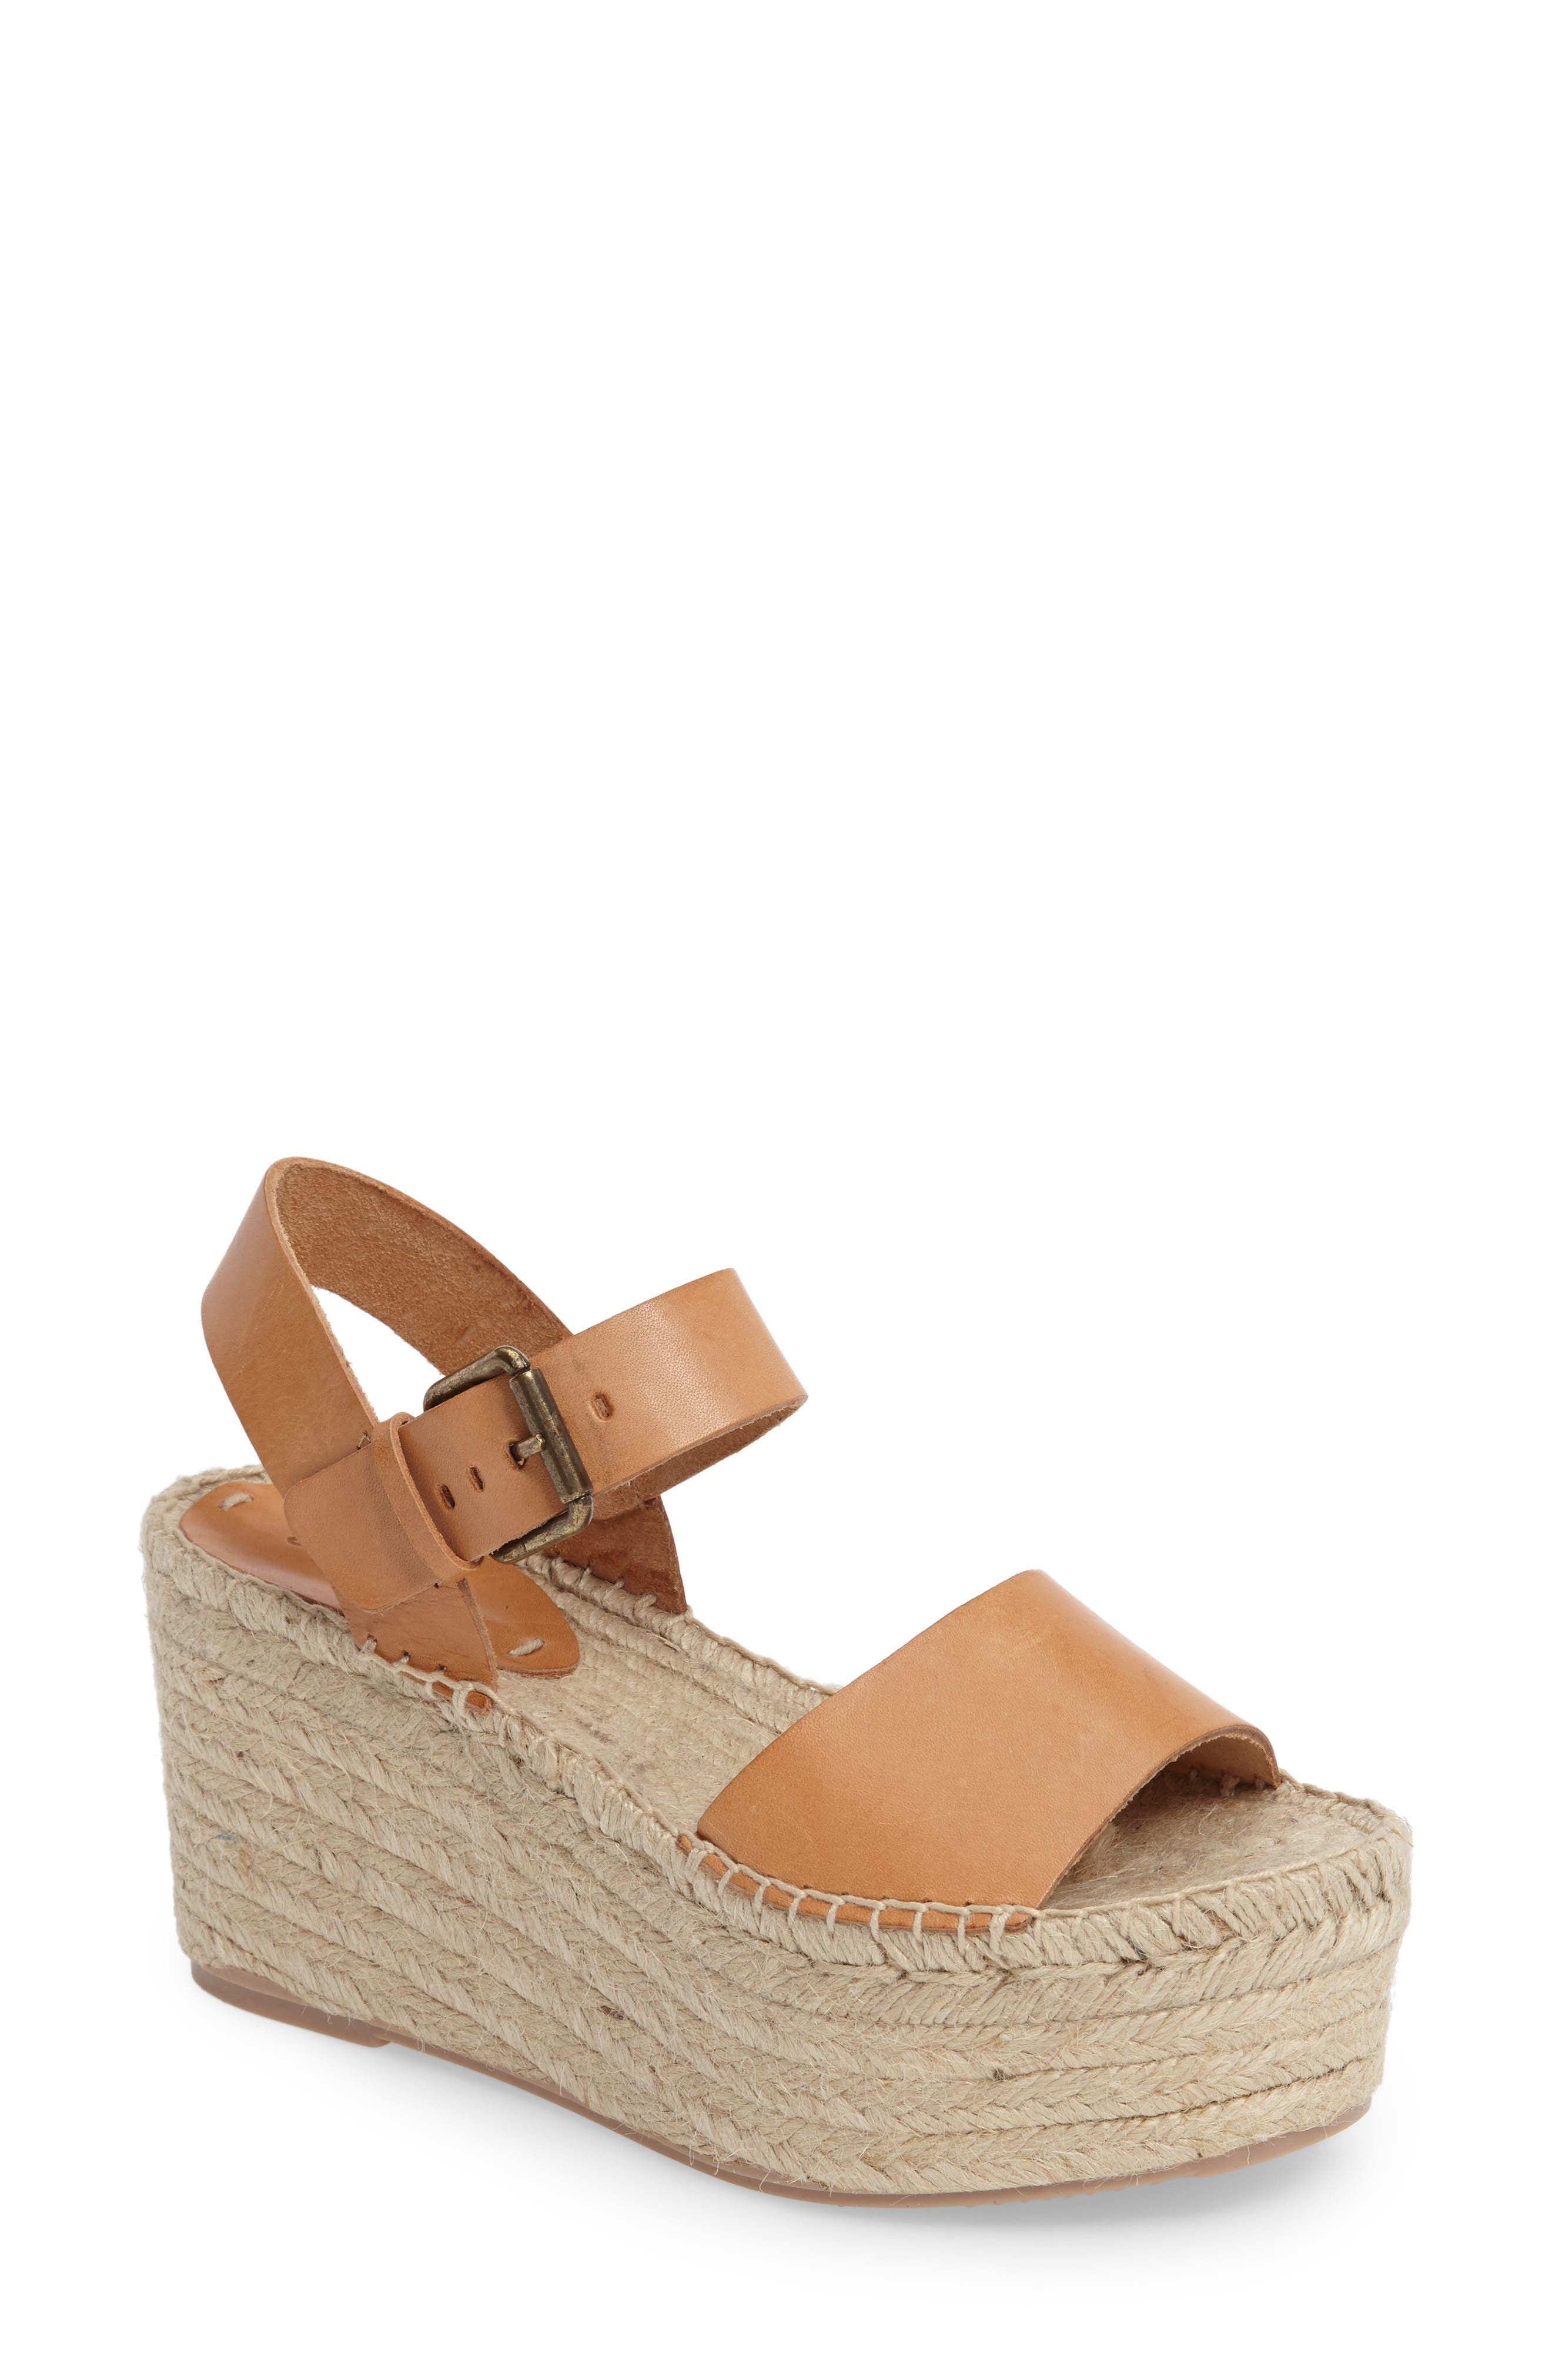 Soludos Platform Wedge Sandal (Women)